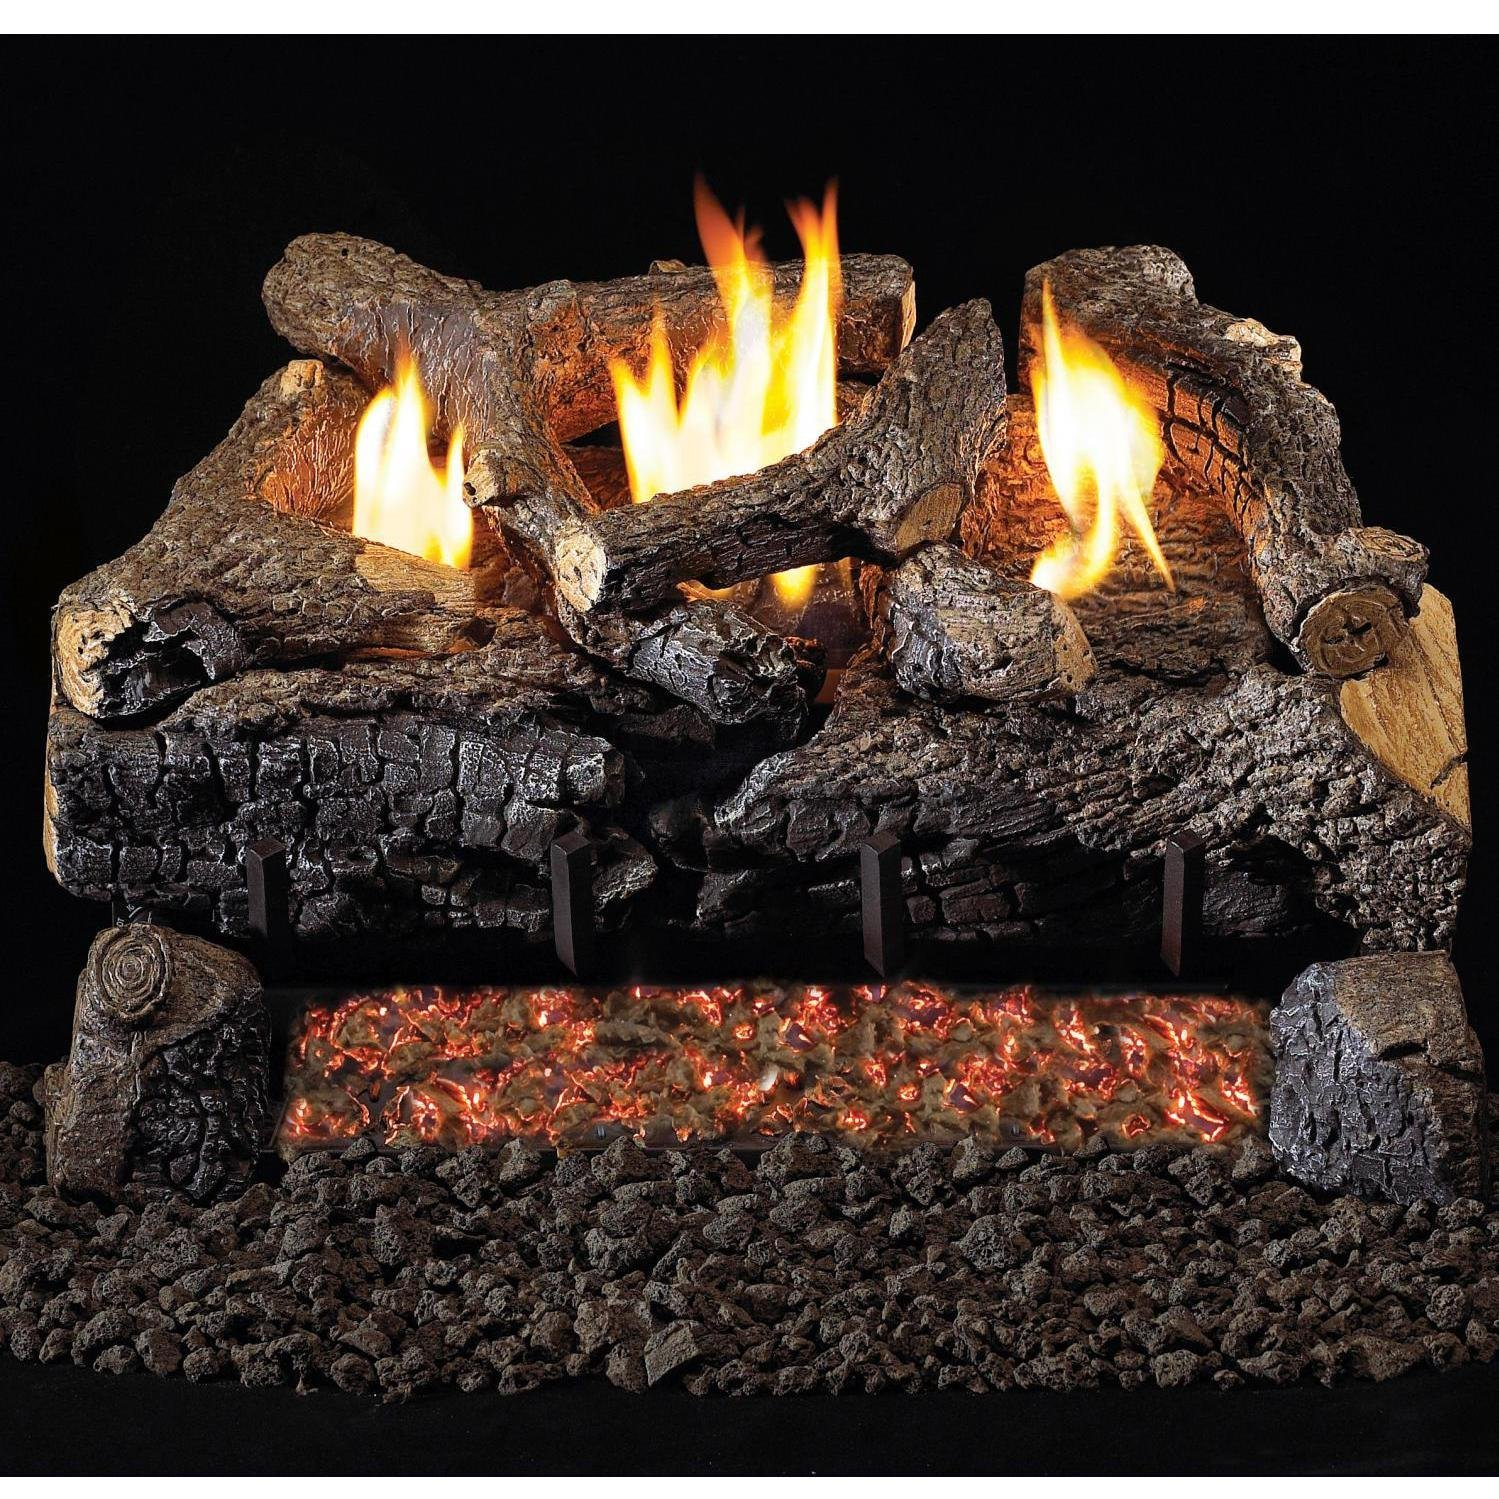 Peterson Real Fyre 24-inch Evening Fyre Charred Log Set With Vent-free Propane